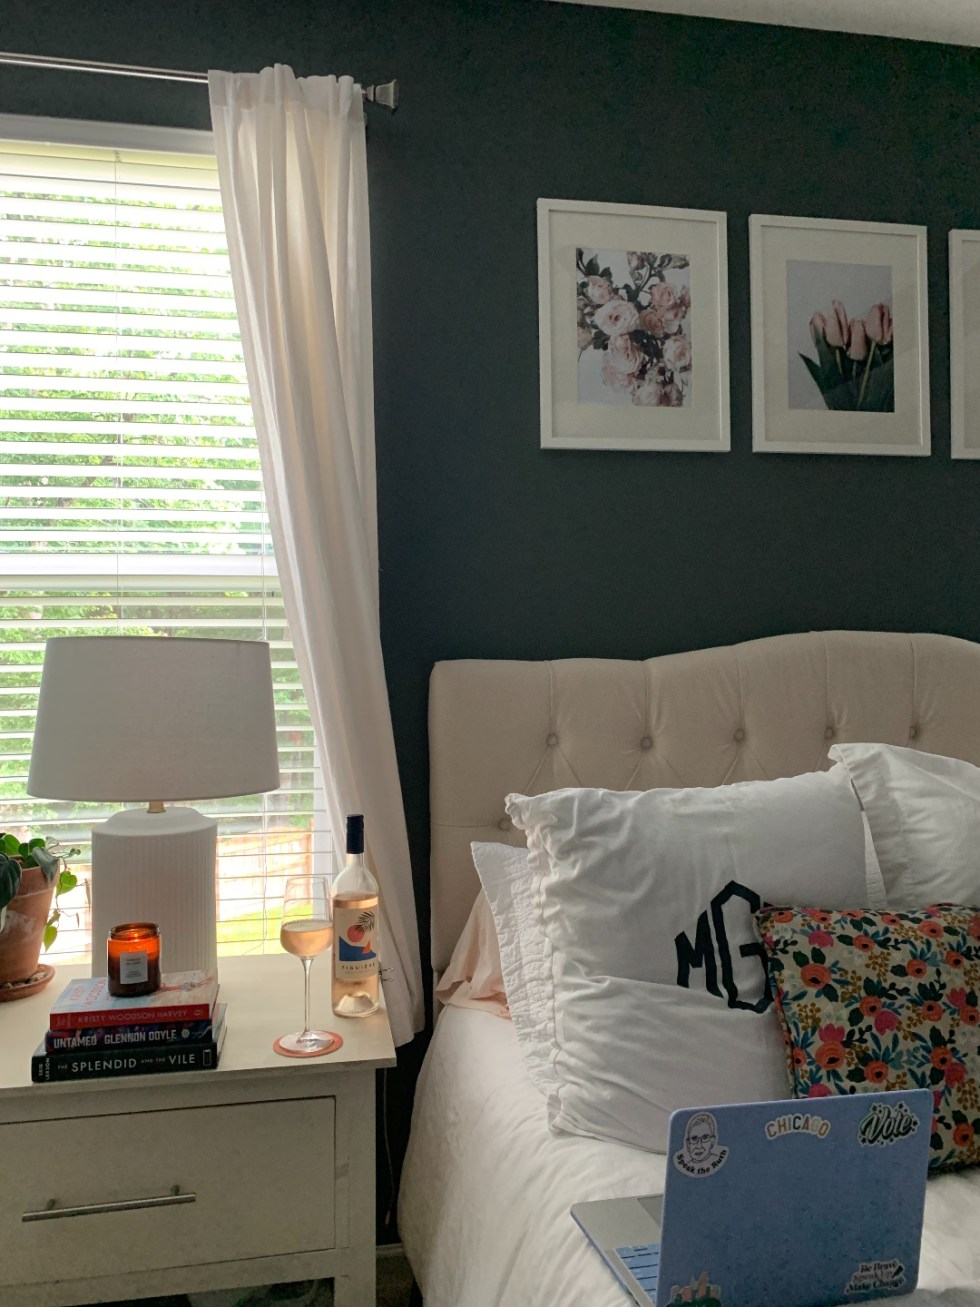 How to Make your Home Cozy: 10 Easy Ways - I'm Fixin' To - @imfixintoblog |How to Make Your Home Cozy by popular NC life and style blog, I'm Fixin' To: image of a bedroom with a bed with a white tuft headboard ad white bedding, floral print artwork, white night stands, white curtains, grey walls, and a serving tray set with a vase of flowers and a candle.